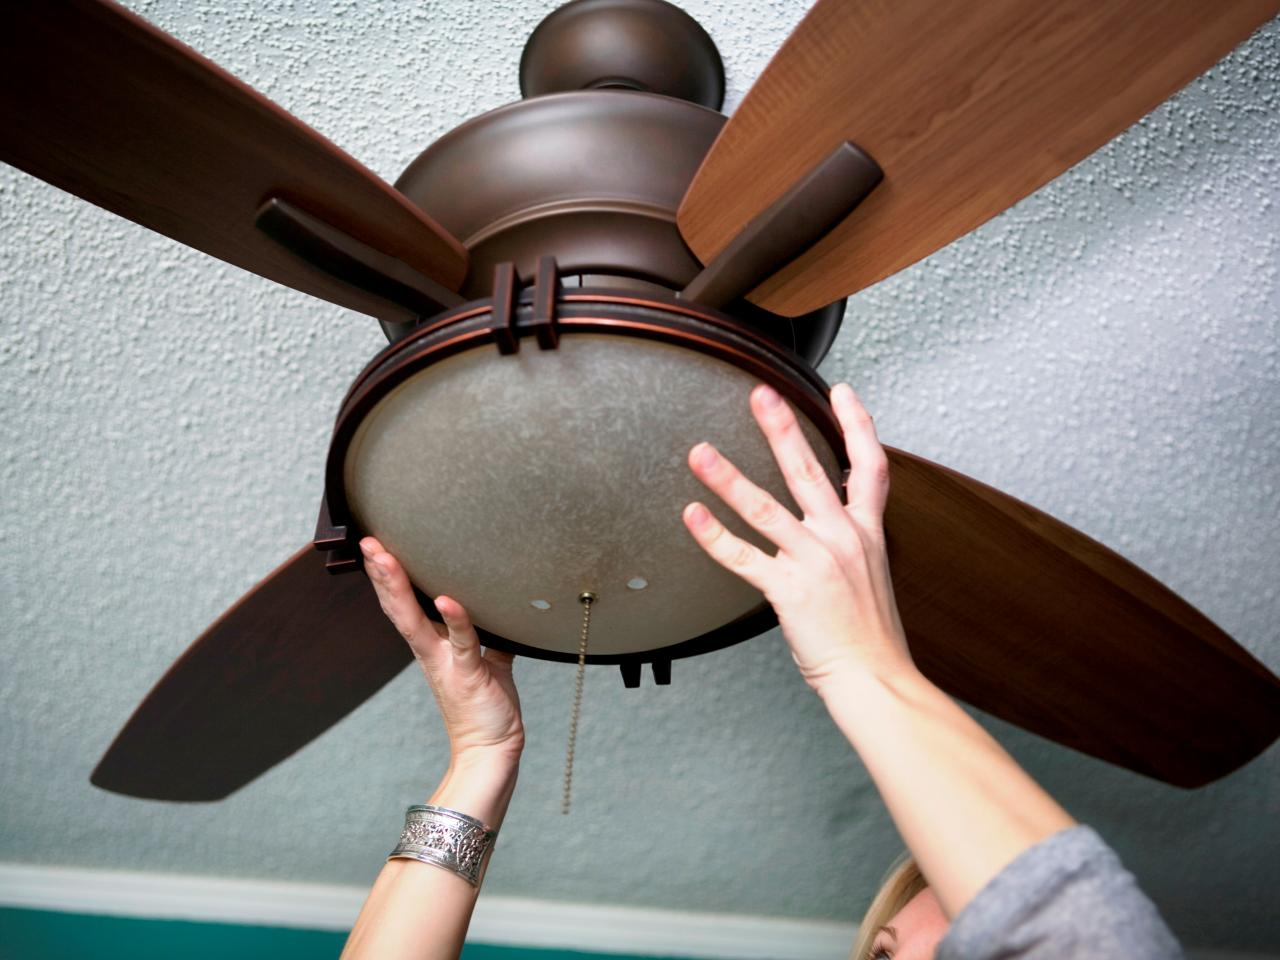 How to Replace a Light Fixture With a Ceiling Fan | how-tos | DIY